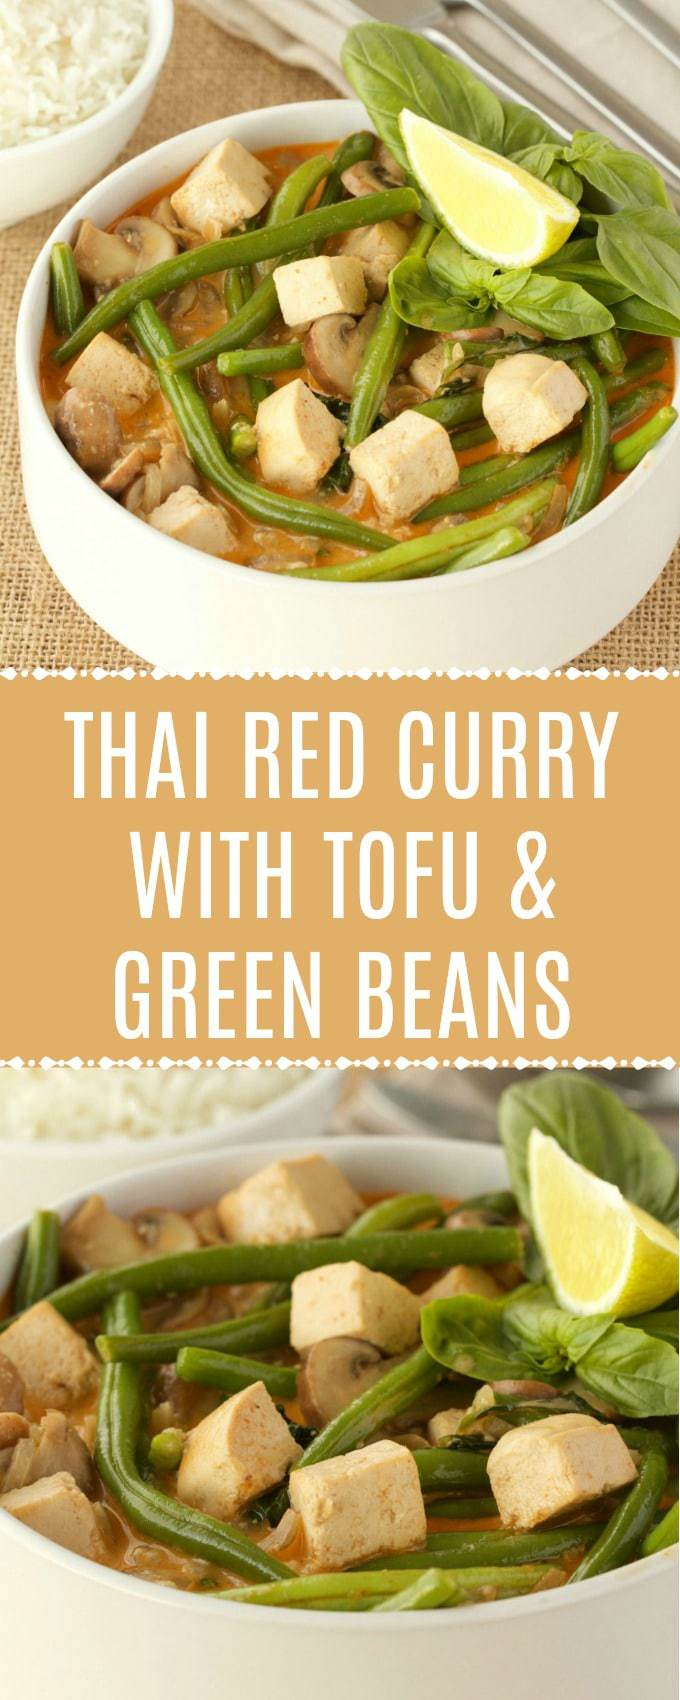 Rich and mildly spicy Thai red curry with tofu and green beans. This veggie-packed vegan red curry is super simple to make yet gourmet to the extreme! Perfect for a fancy dinner but easy enough for a regular weeknight dinner too! | lovingitvegan.com